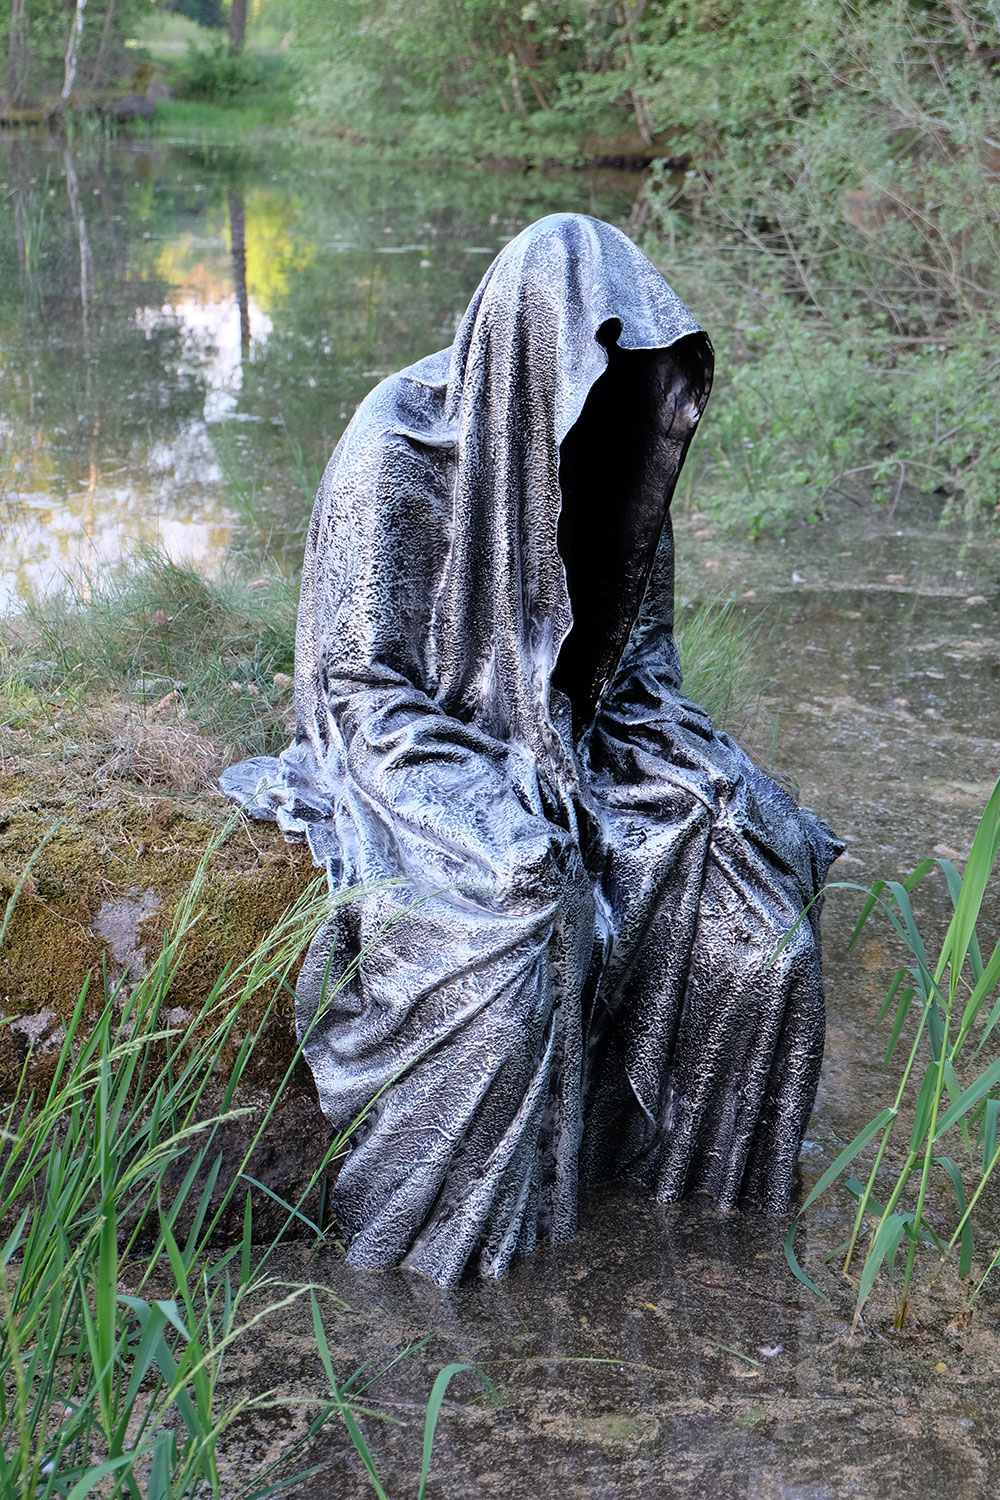 blockheide-gmuend-lower-austria-guardians-of-time-manfred-kili-kielnhofer-contemporary-fine-art-sculpture-arts-arte-2881